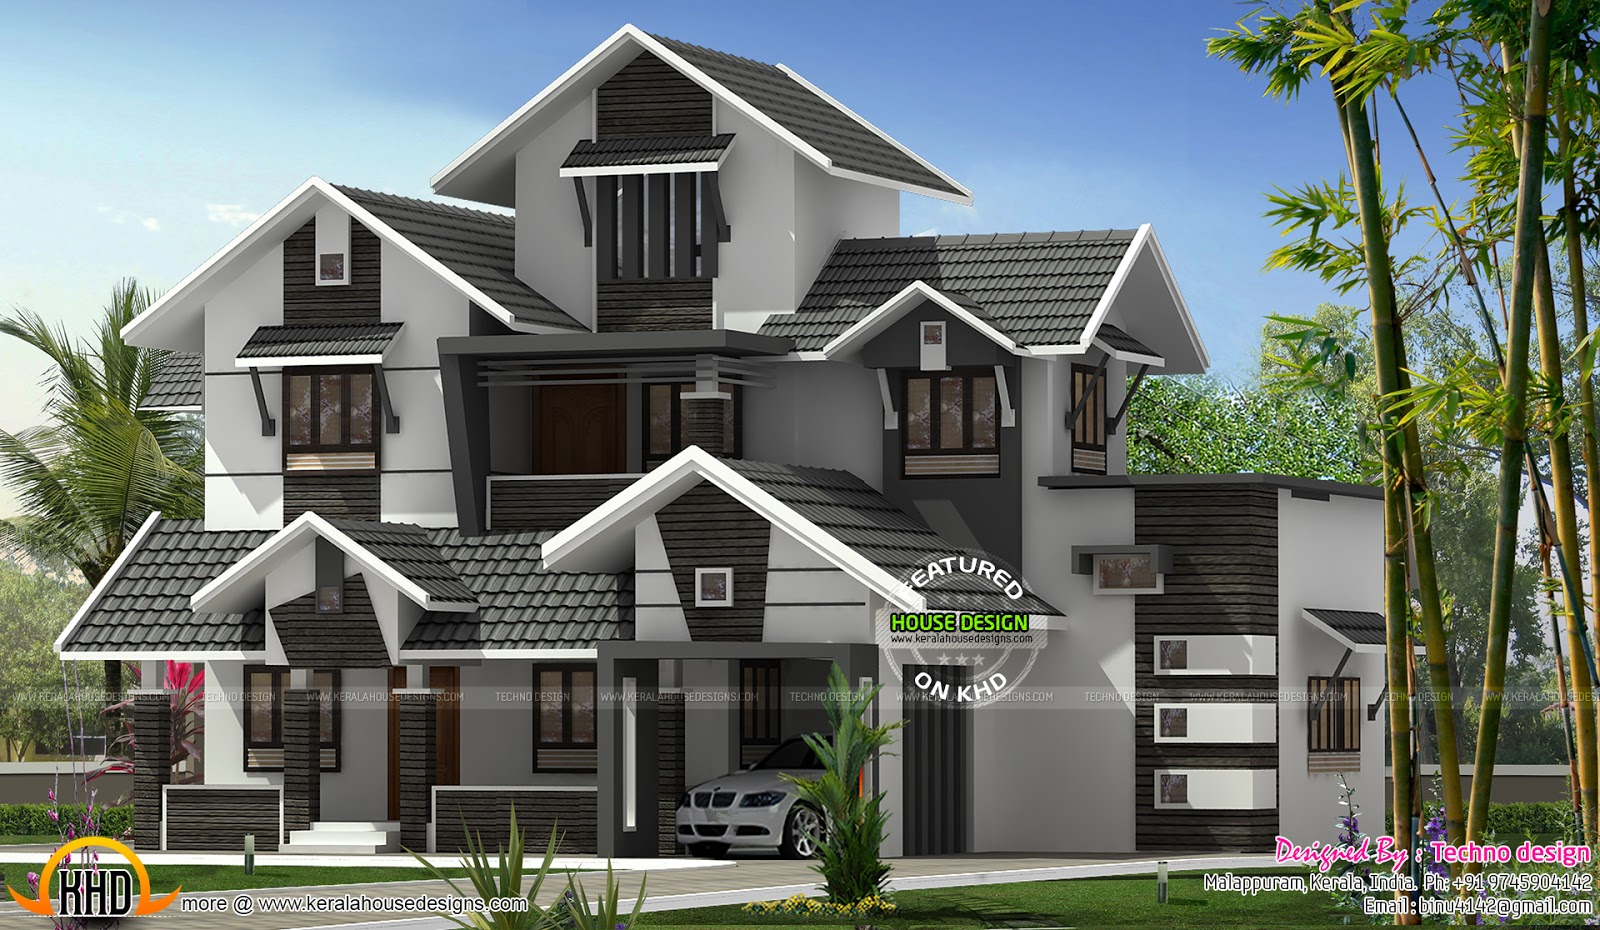 Modern kerala home design kerala home design and floor plans for Kerala contemporary home designs